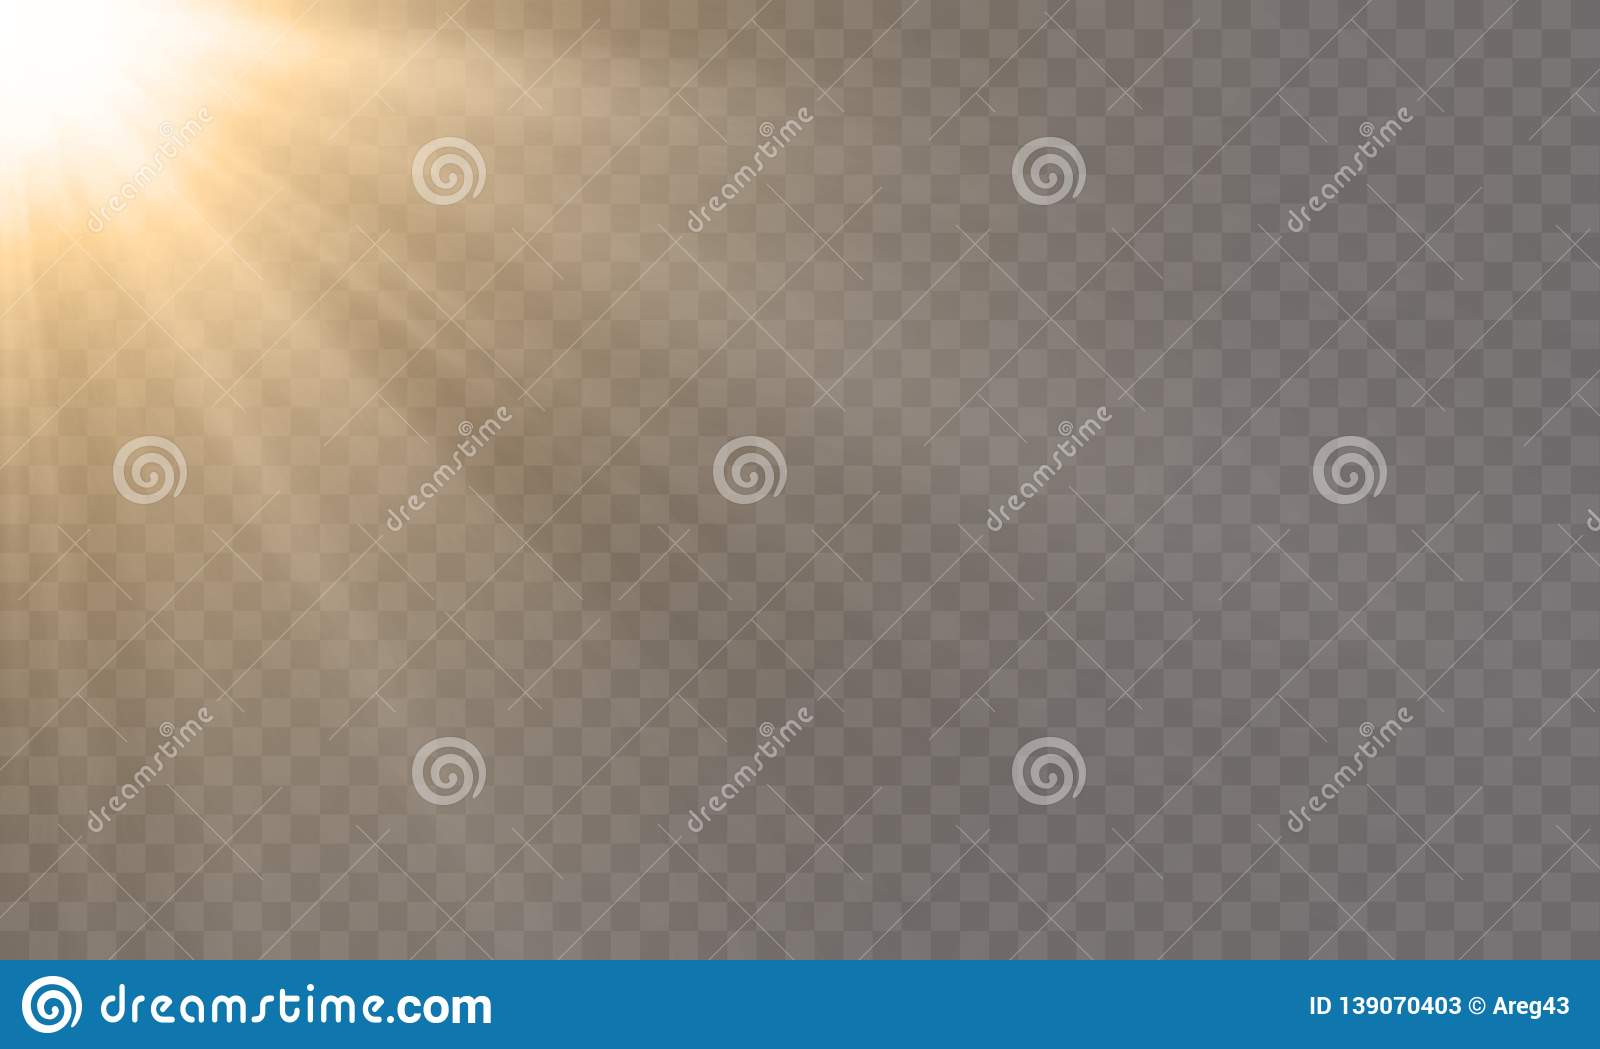 White glowing light explode effect, sun rays shine vector transparent background